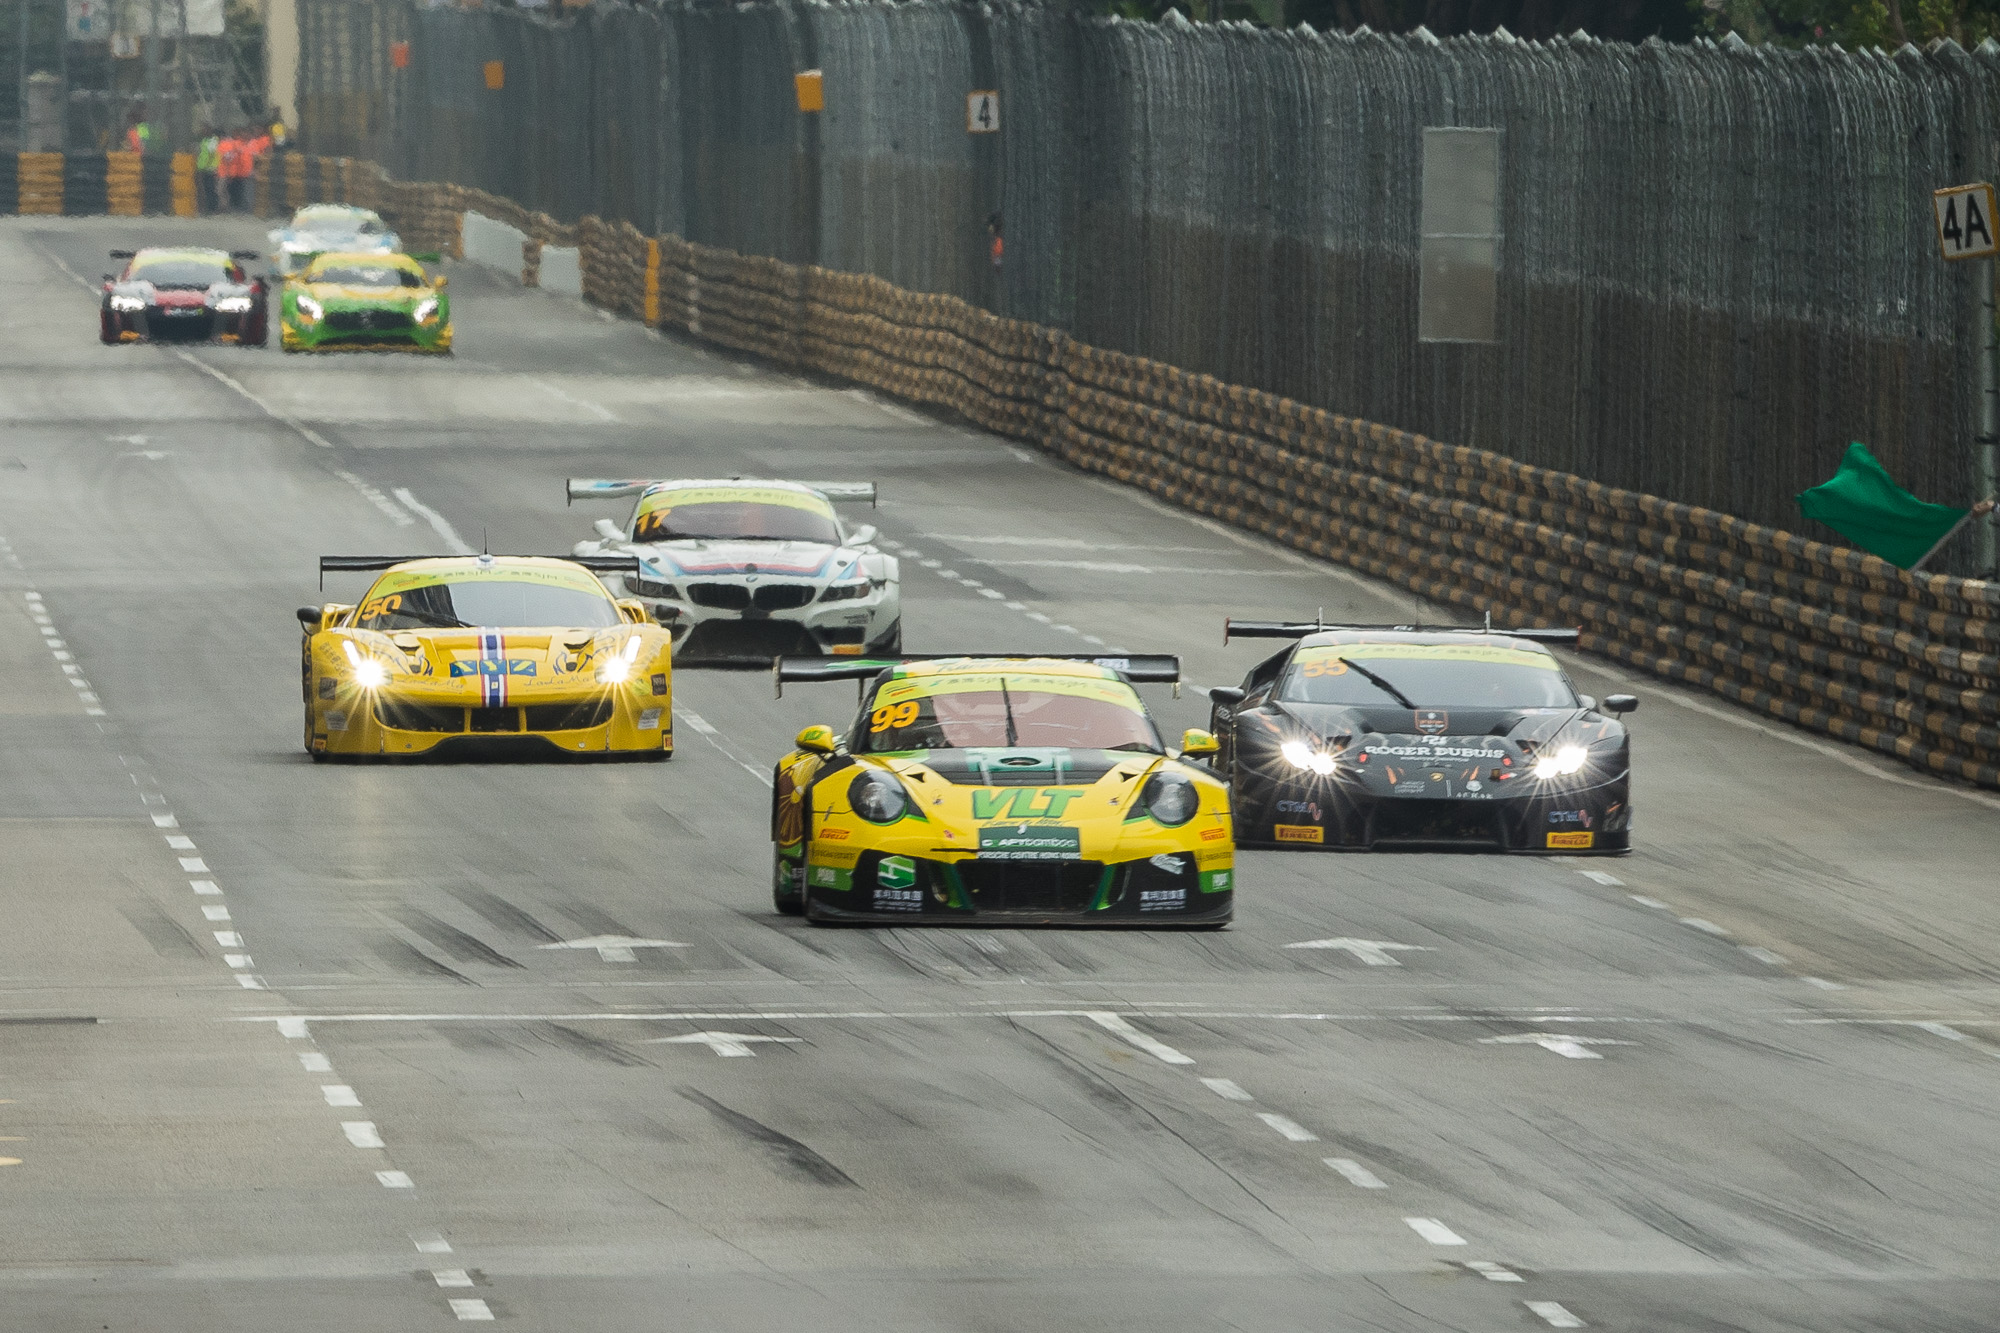 Team Craft Bamboo leading the way after a restart. This is one of fastest parts of the Macau circuit coming out of Fishermans bend heading towards the famous Lisboa corner.